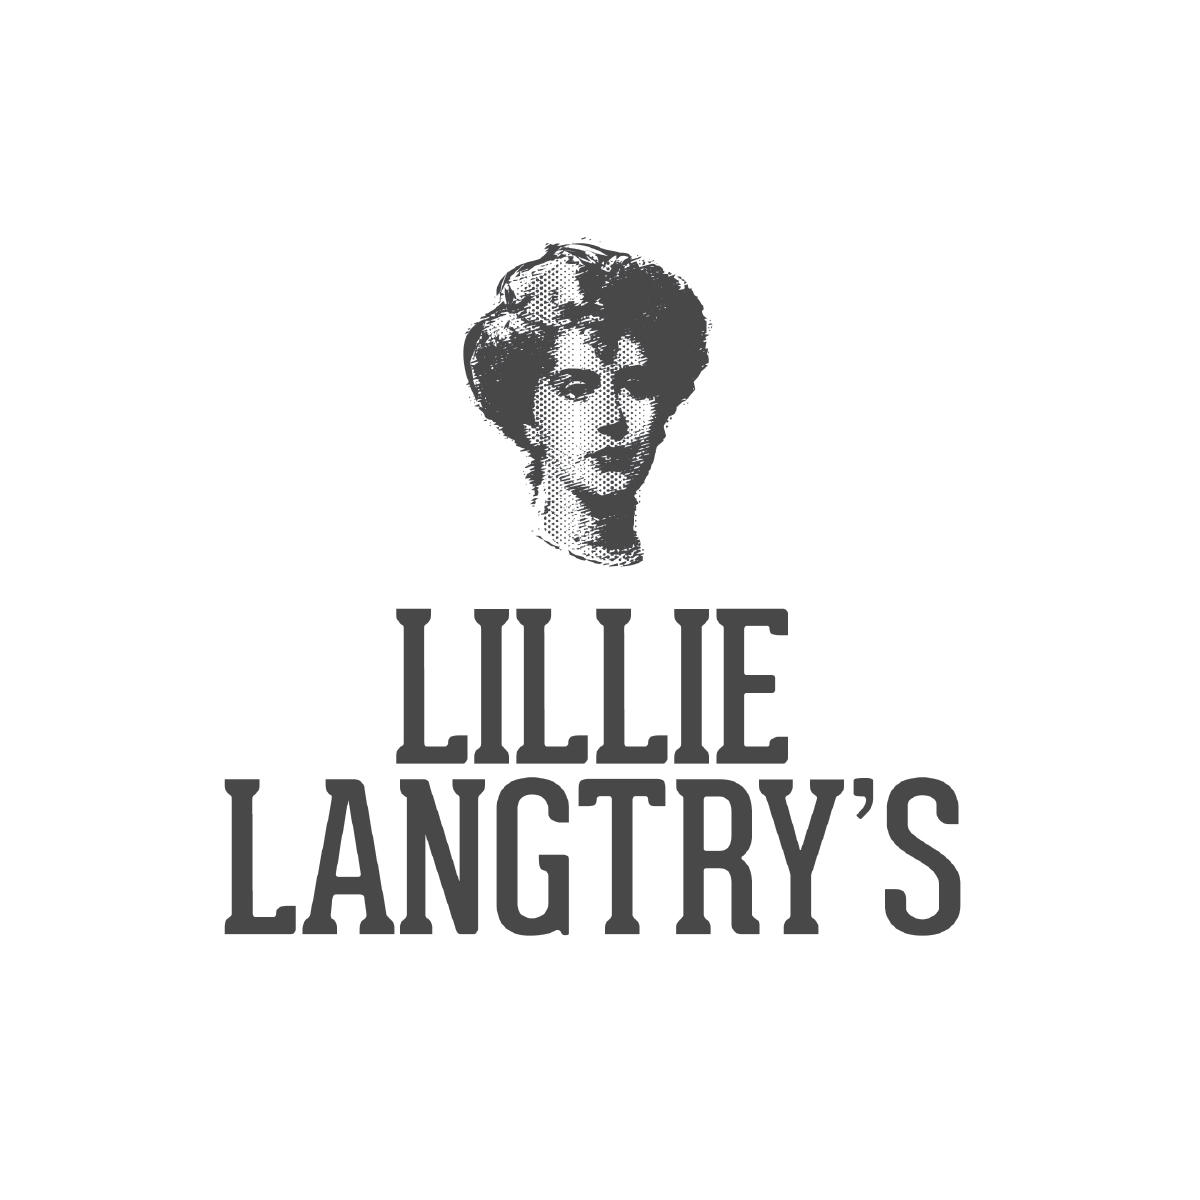 The Lillie Langtry's - Nottingham, Nottinghamshire NG1 4BY - 01159 507492 | ShowMeLocal.com